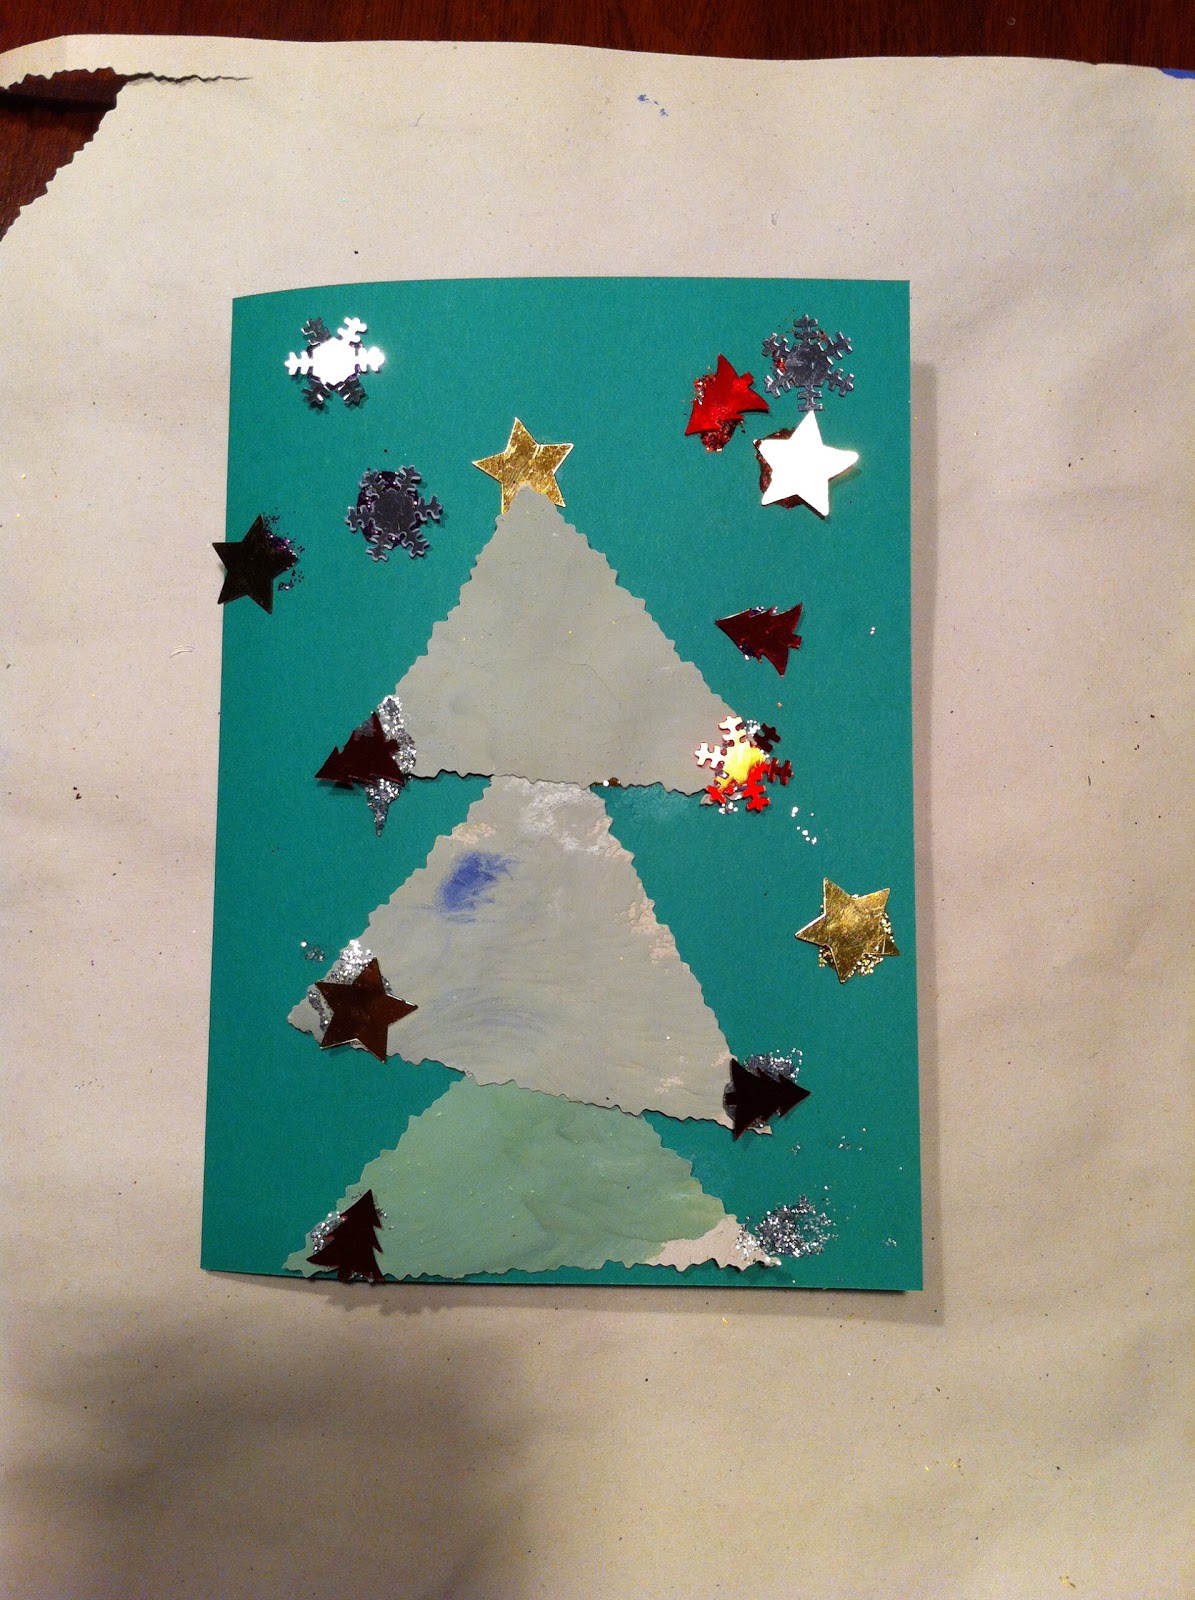 Baby Baby: An Easy Christmas Card Design for a Child to Make